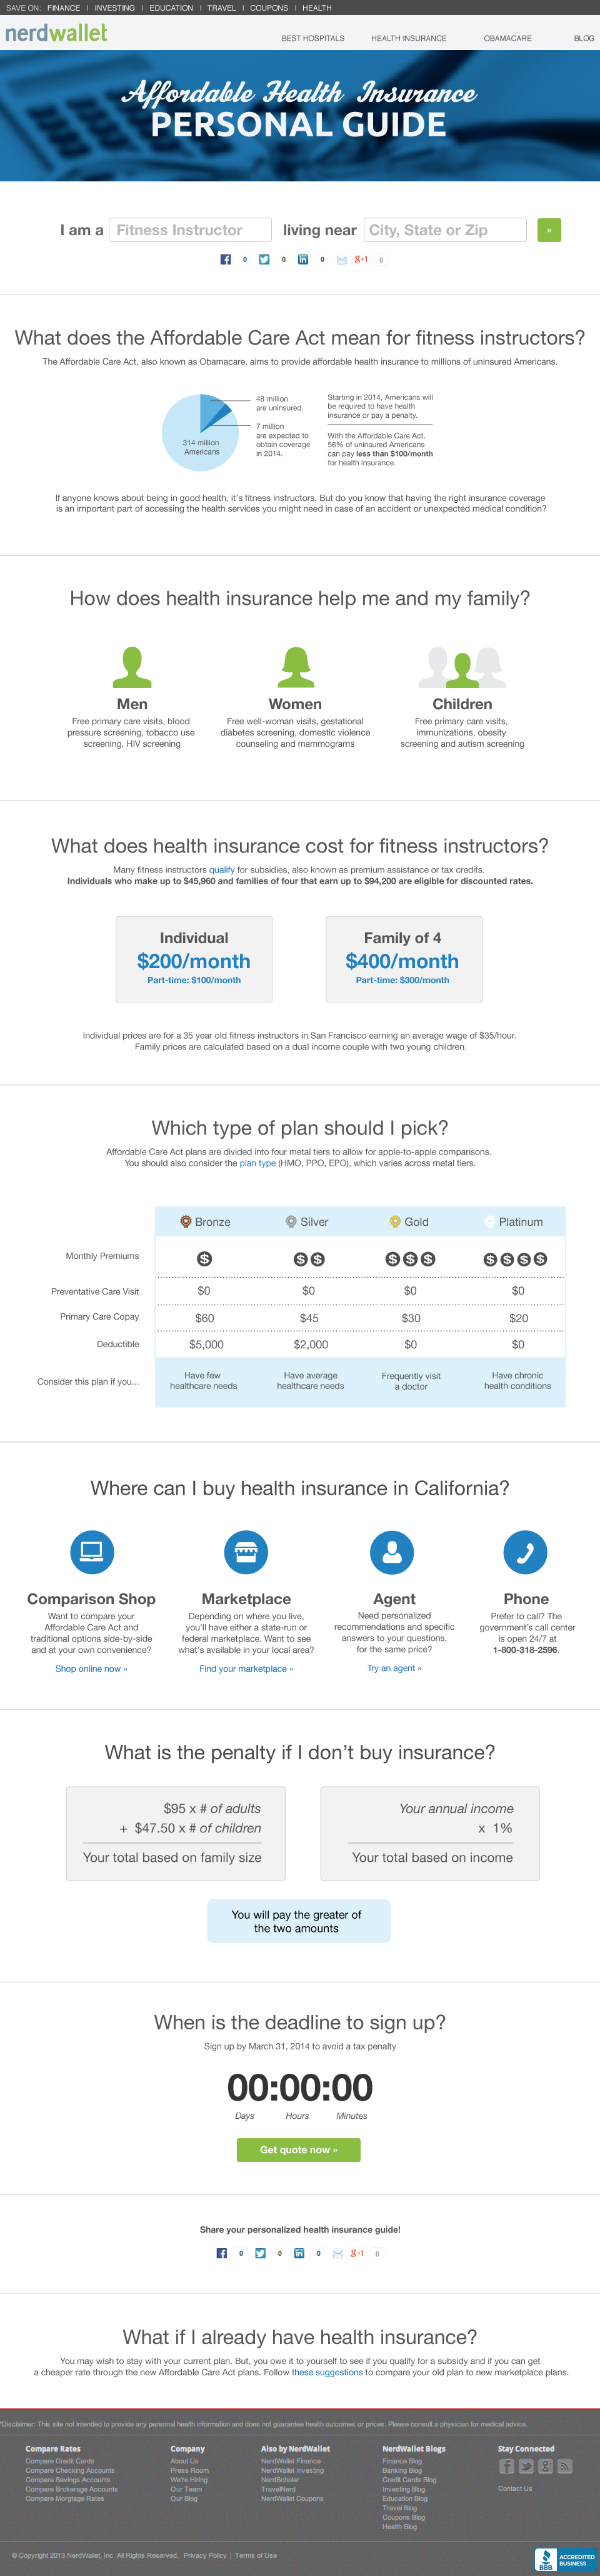 Health-Insurance_Content_Guide_AM_r2a.png